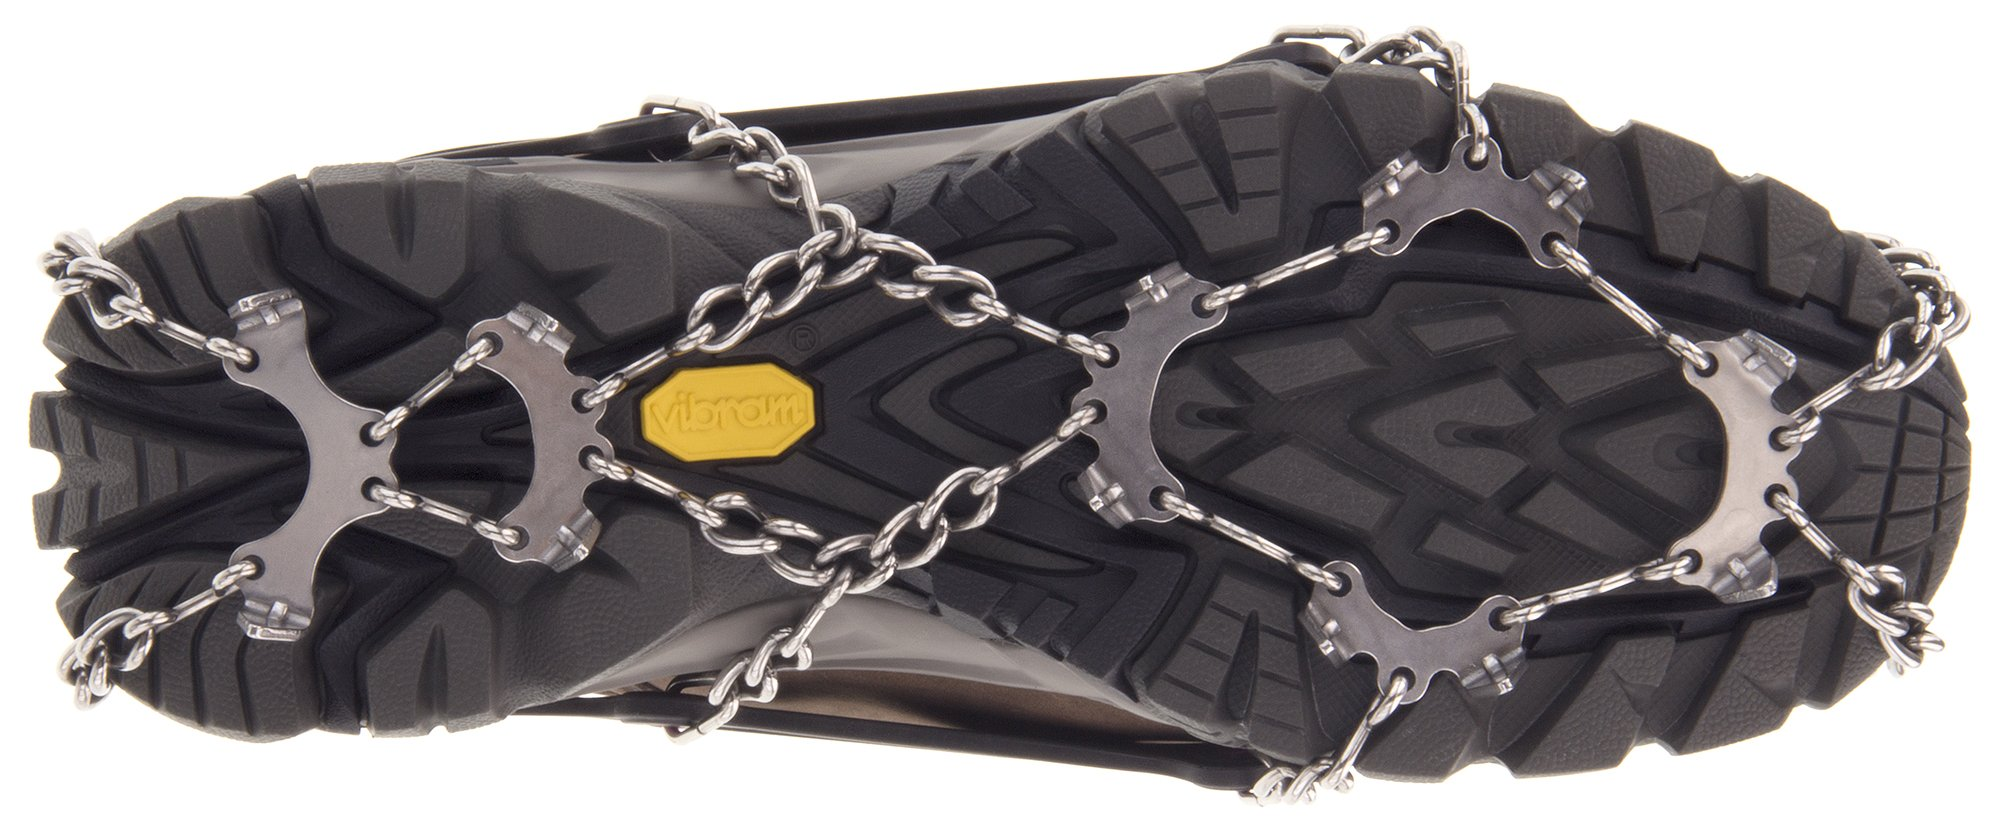 Kahtoola MICROspikes Footwear Traction - Black Medium - 2016/17 by Kahtoola (Image #5)